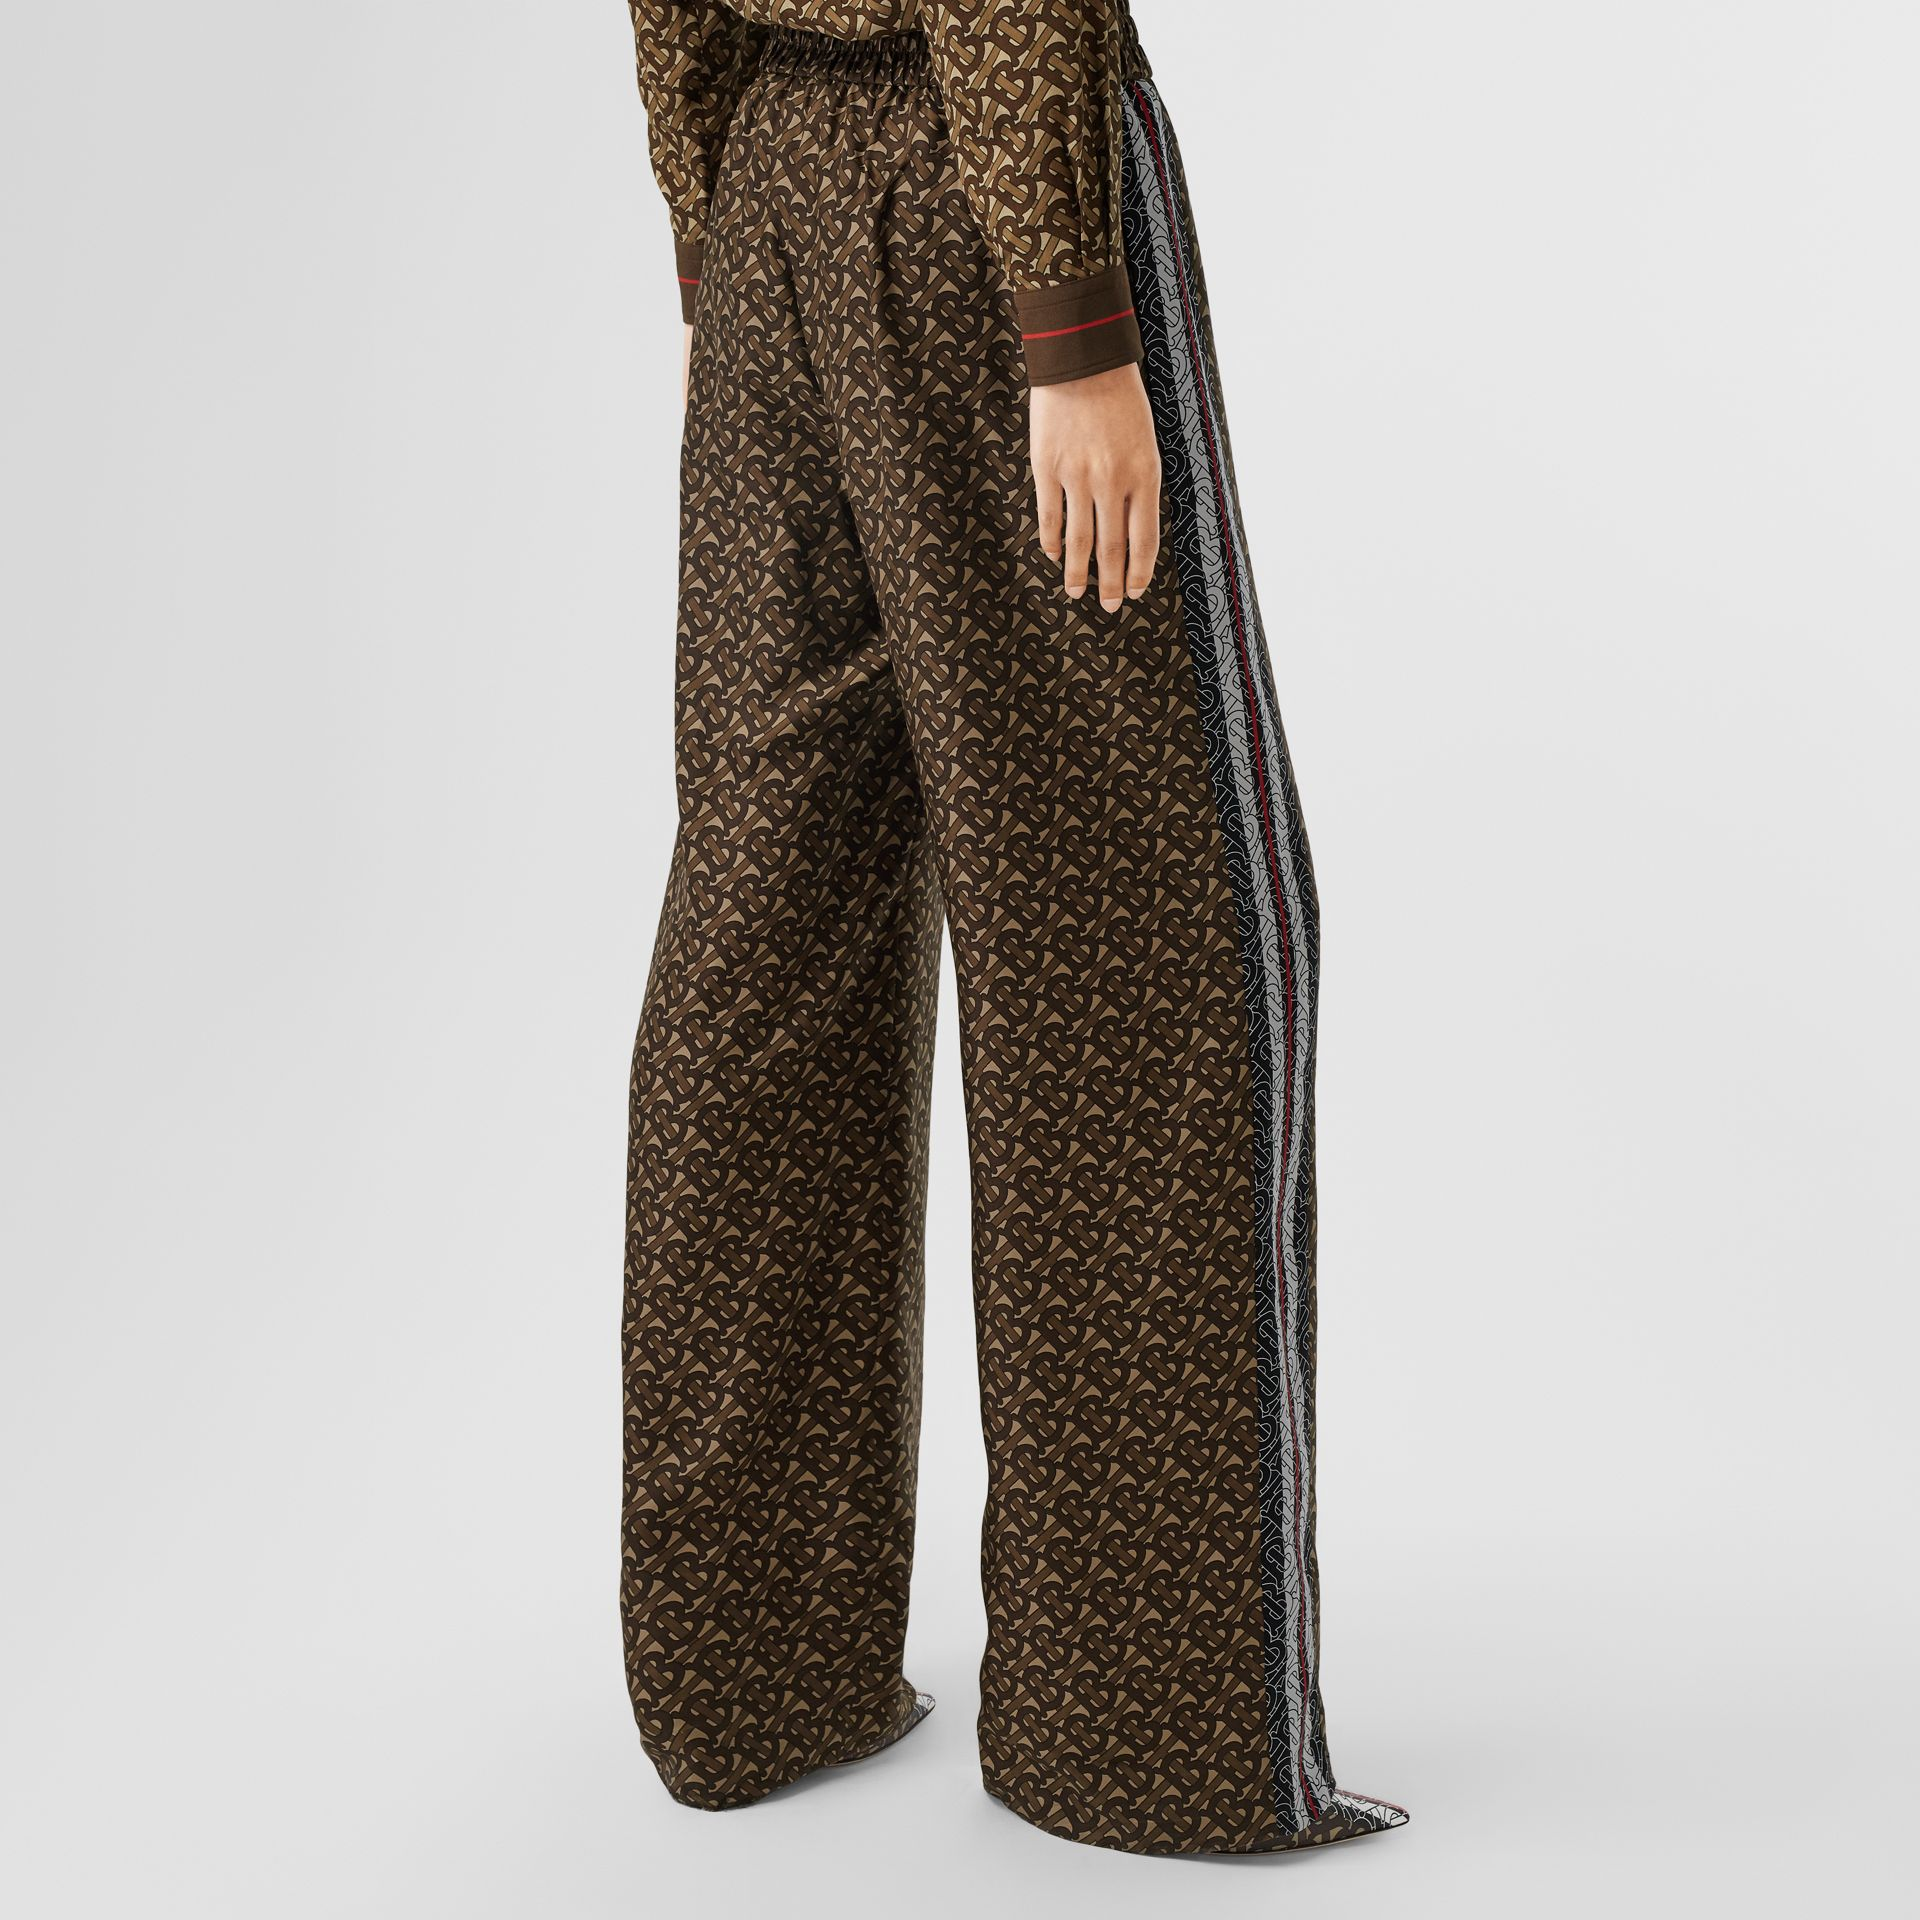 Monogram Stripe Print Silk Trousers in Bridle Brown - Women | Burberry United Kingdom - gallery image 4